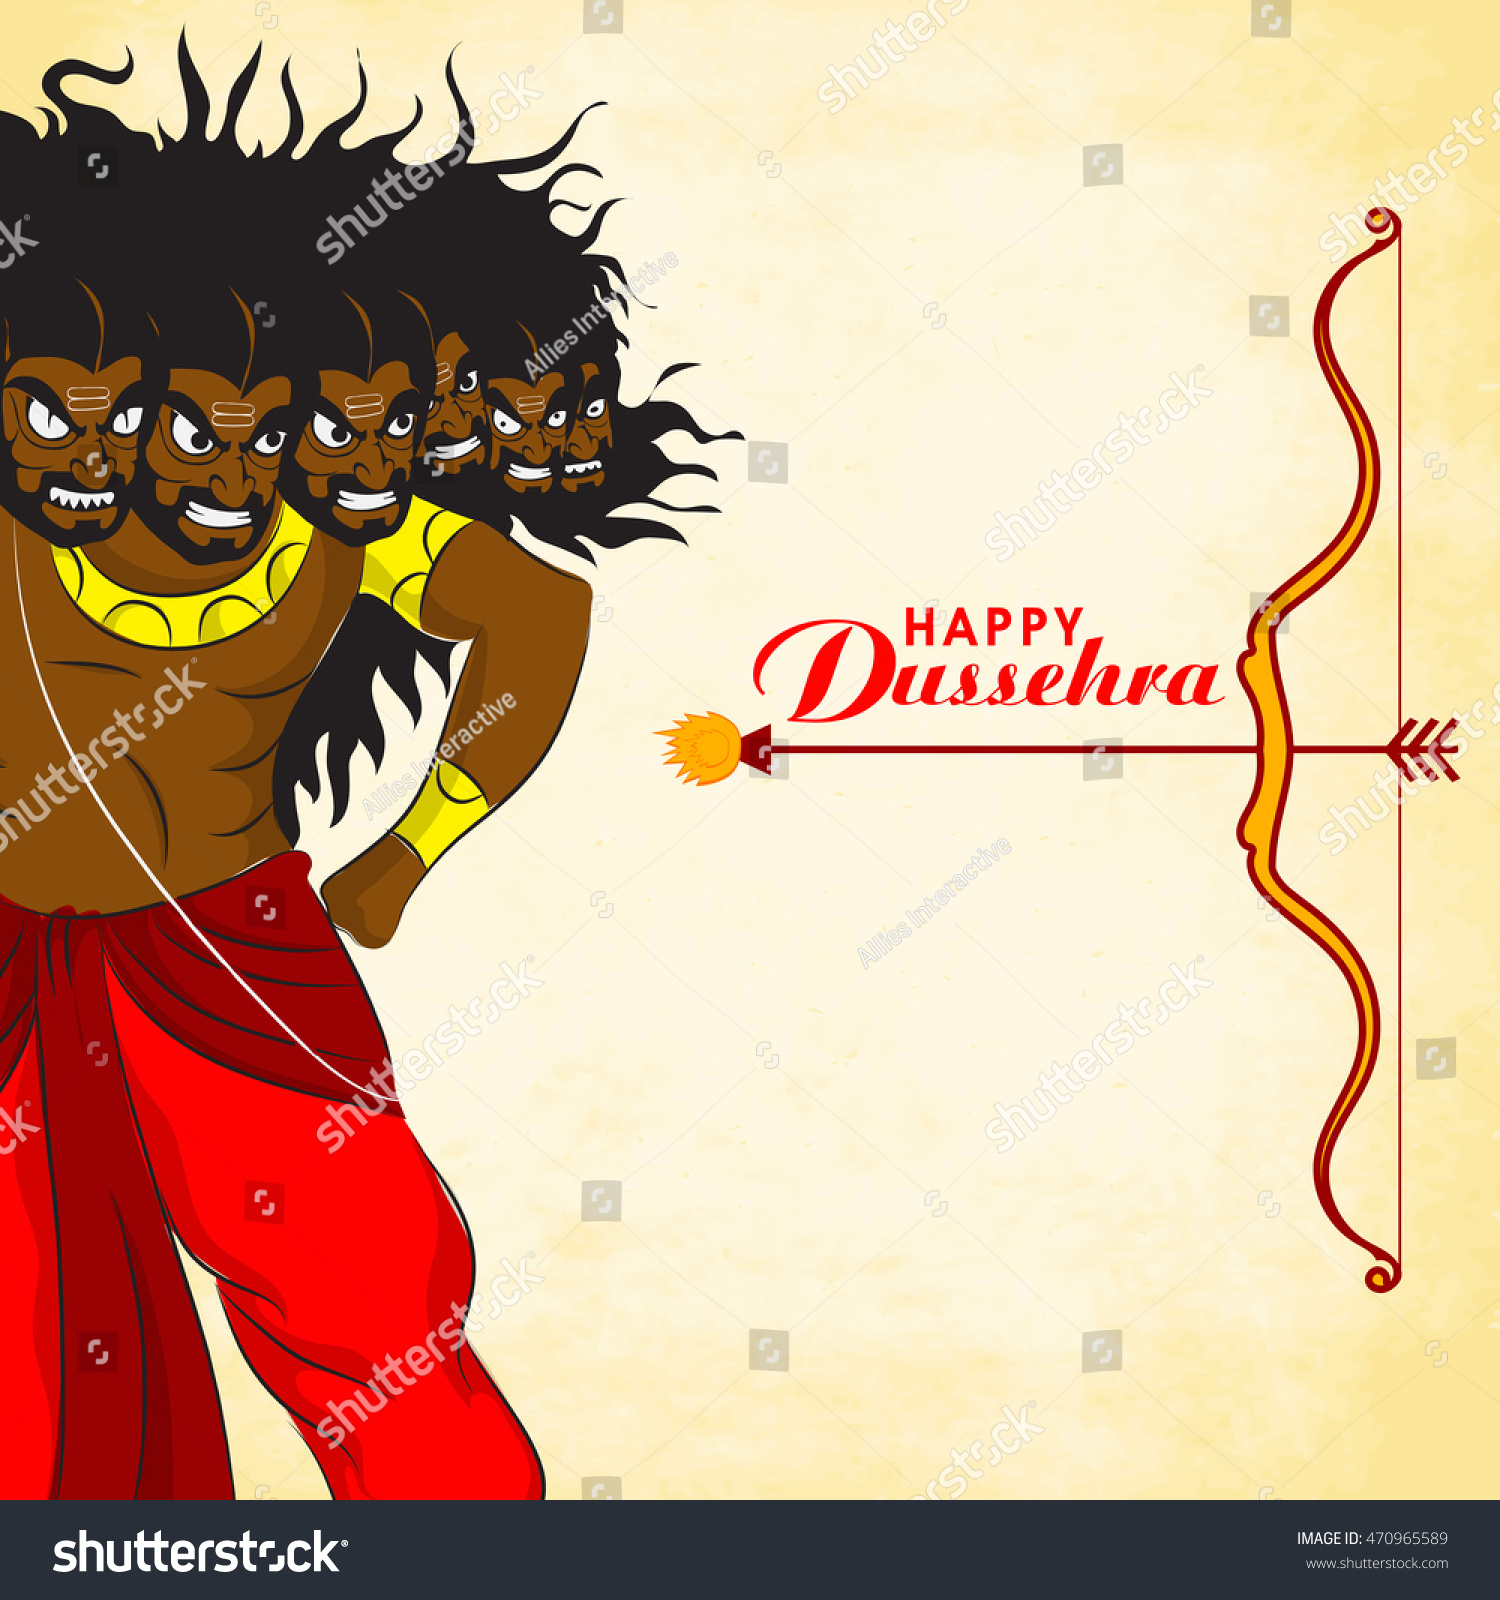 Creative illustration of Angry Ravana with bow and arrow on shiny background for Indian Festival Happy Dussehra celebration